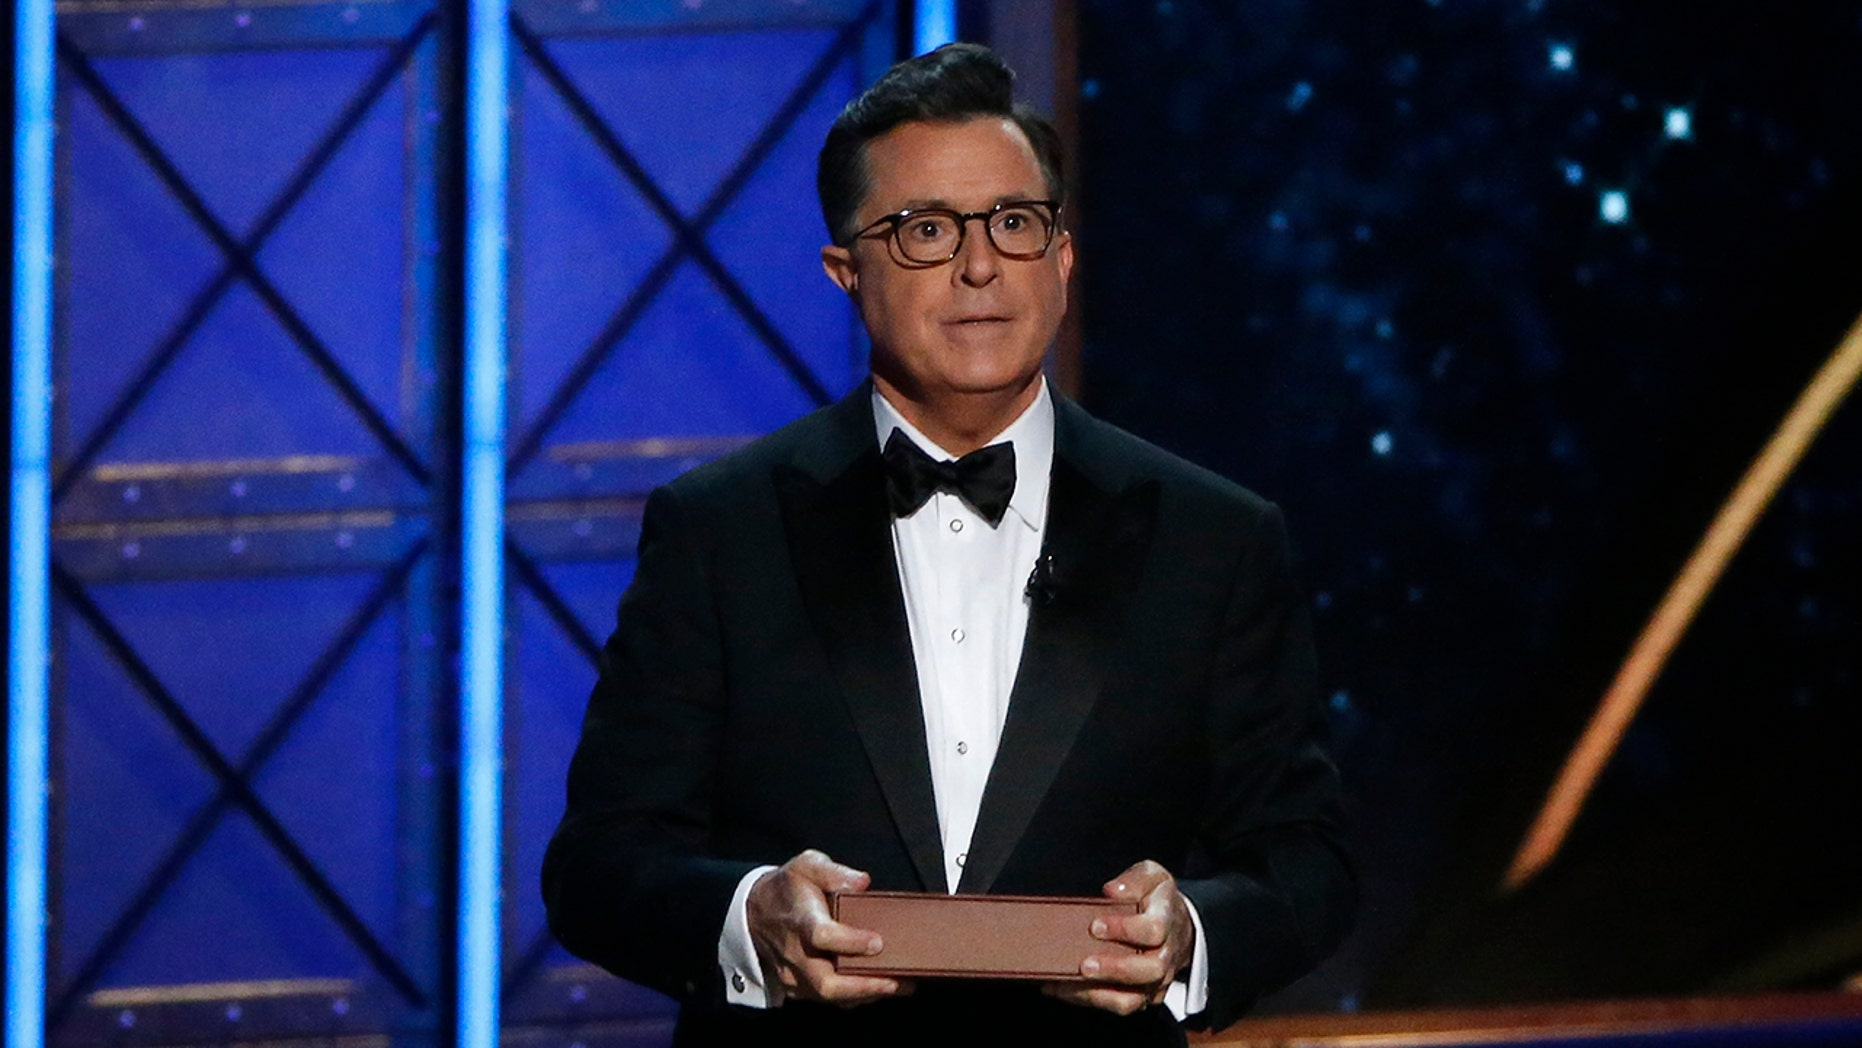 The 69th Primetime Emmy Awards Show in Los Angeles, California, Sept. 17, 2017. Host Stephen Colbert holds a book as he speaks during the show. He'll be vying for another set of media awards this year, #TheFakies Awards.